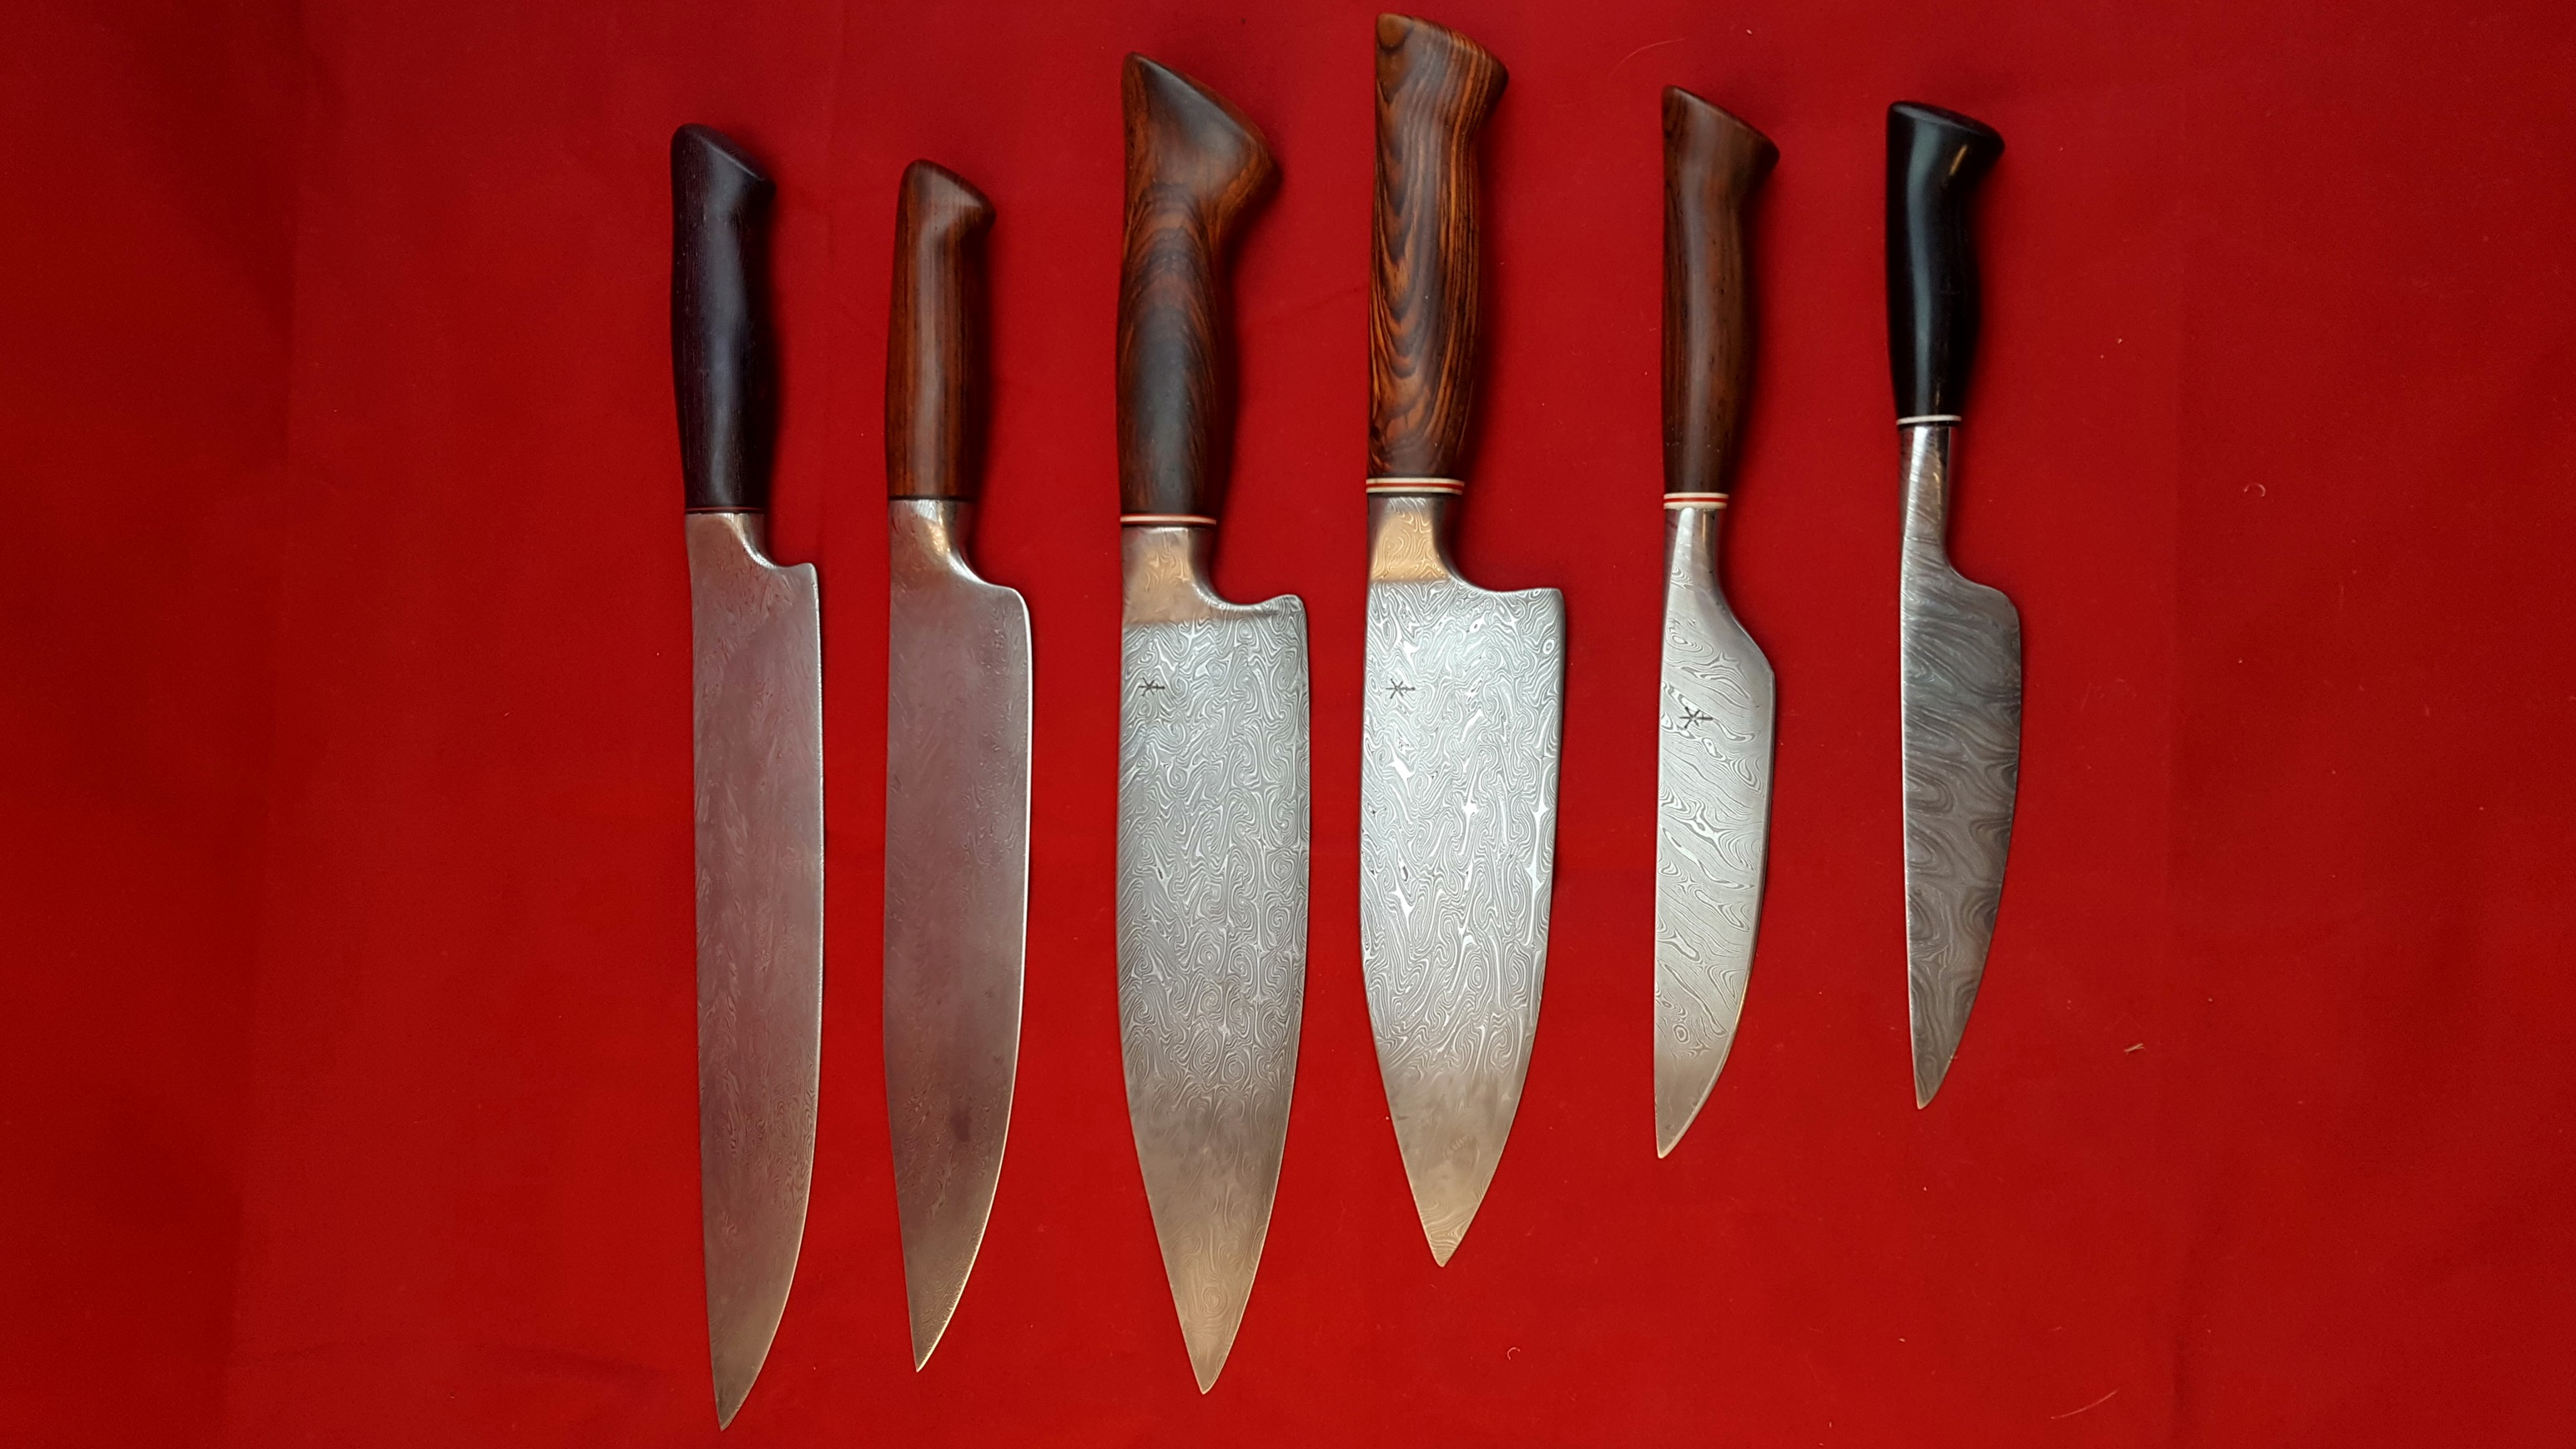 Selection of chef's knives of different sizes